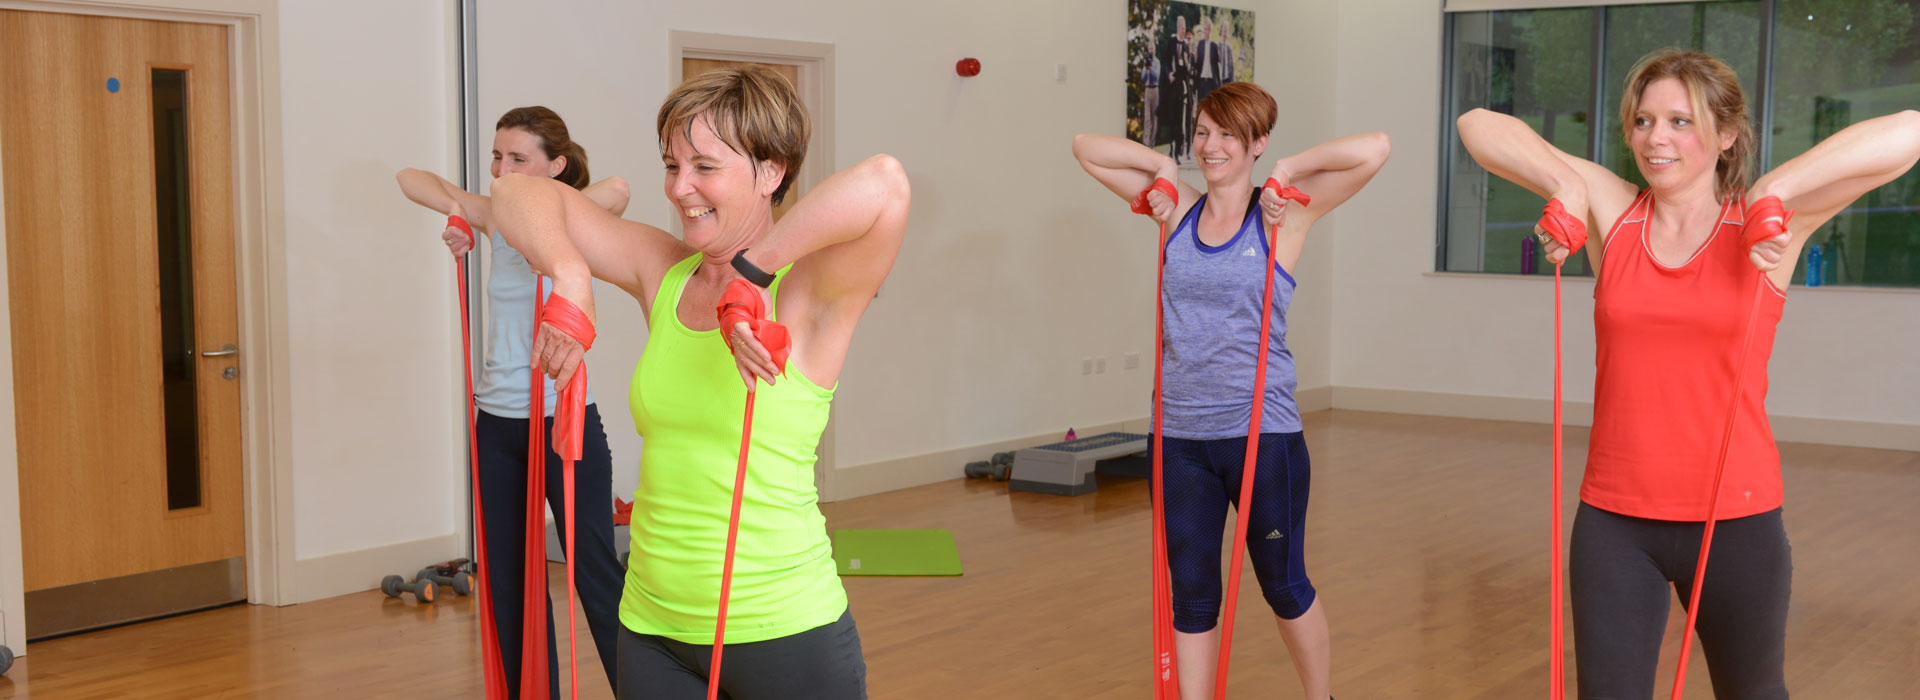 Flex and Tone at Malvern Active